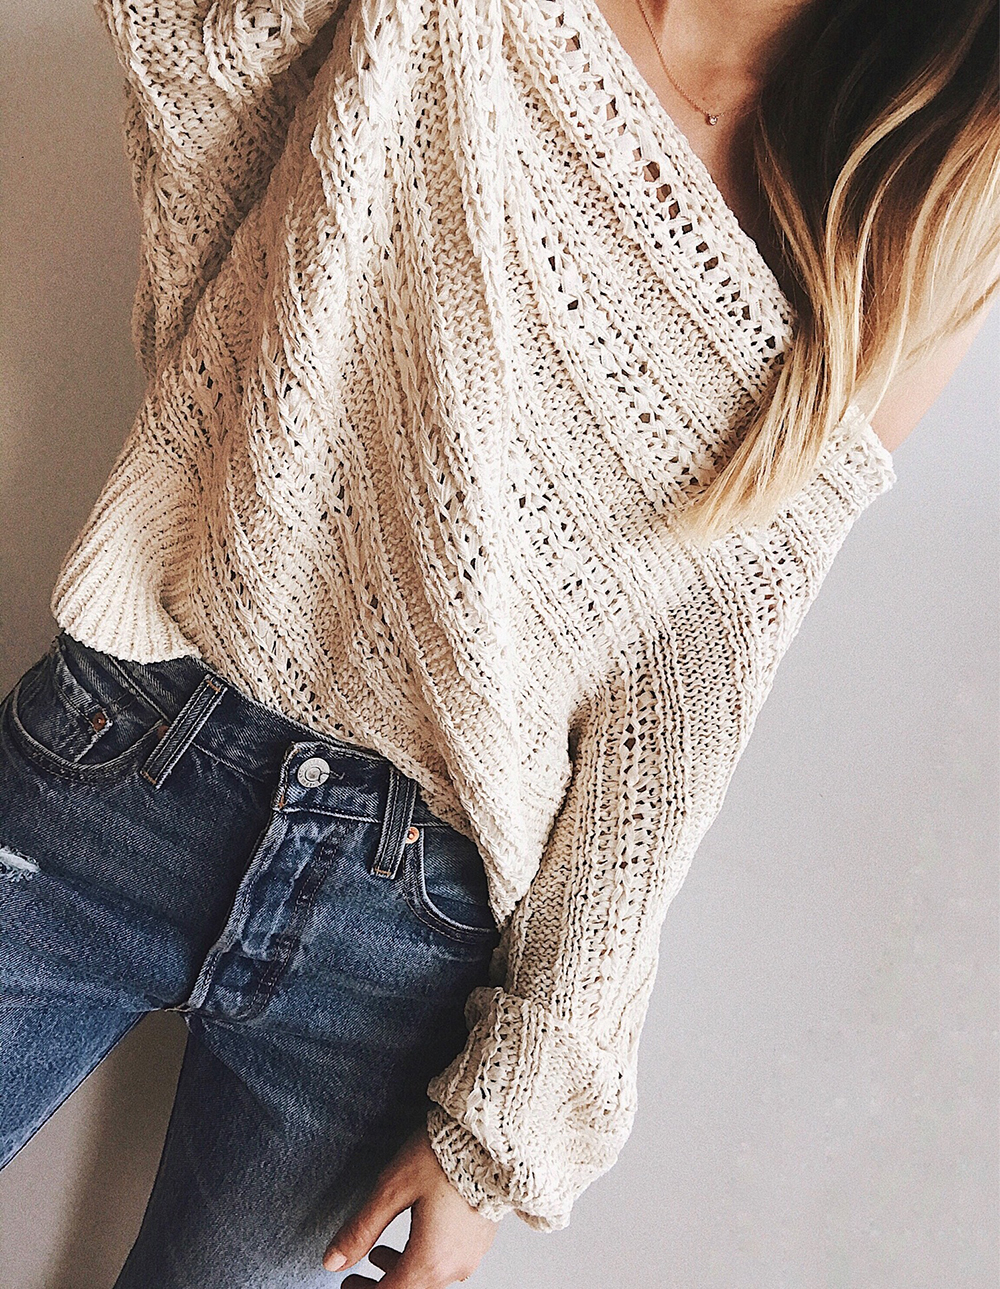 livvyland-blog-olivia-watson-instagram-roundup-livvylandblog-cozy-chic-boho-outfit-idea-slouchy-sweater